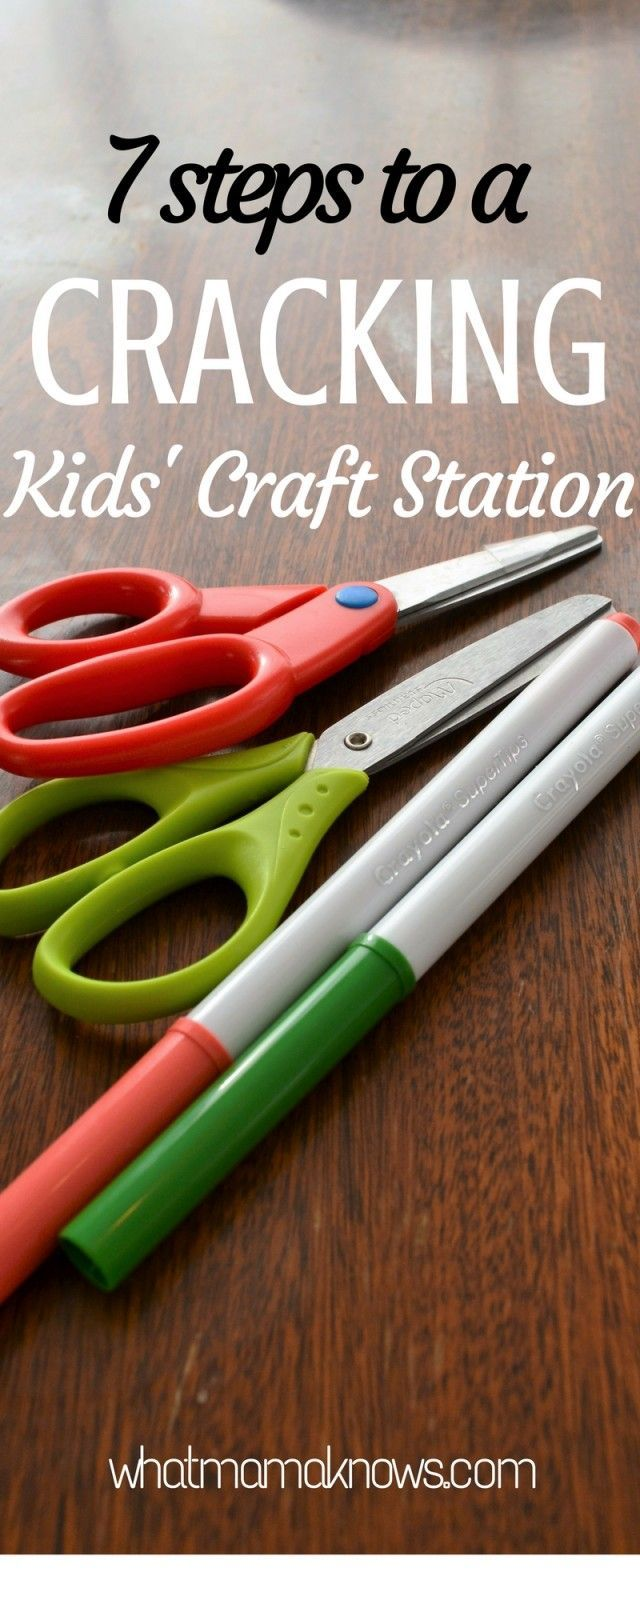 Kids' craft station ideas. Encourage creativity in toddlers and children with ideas for a craft station accessible for kids. Cutting and sticking abounds!